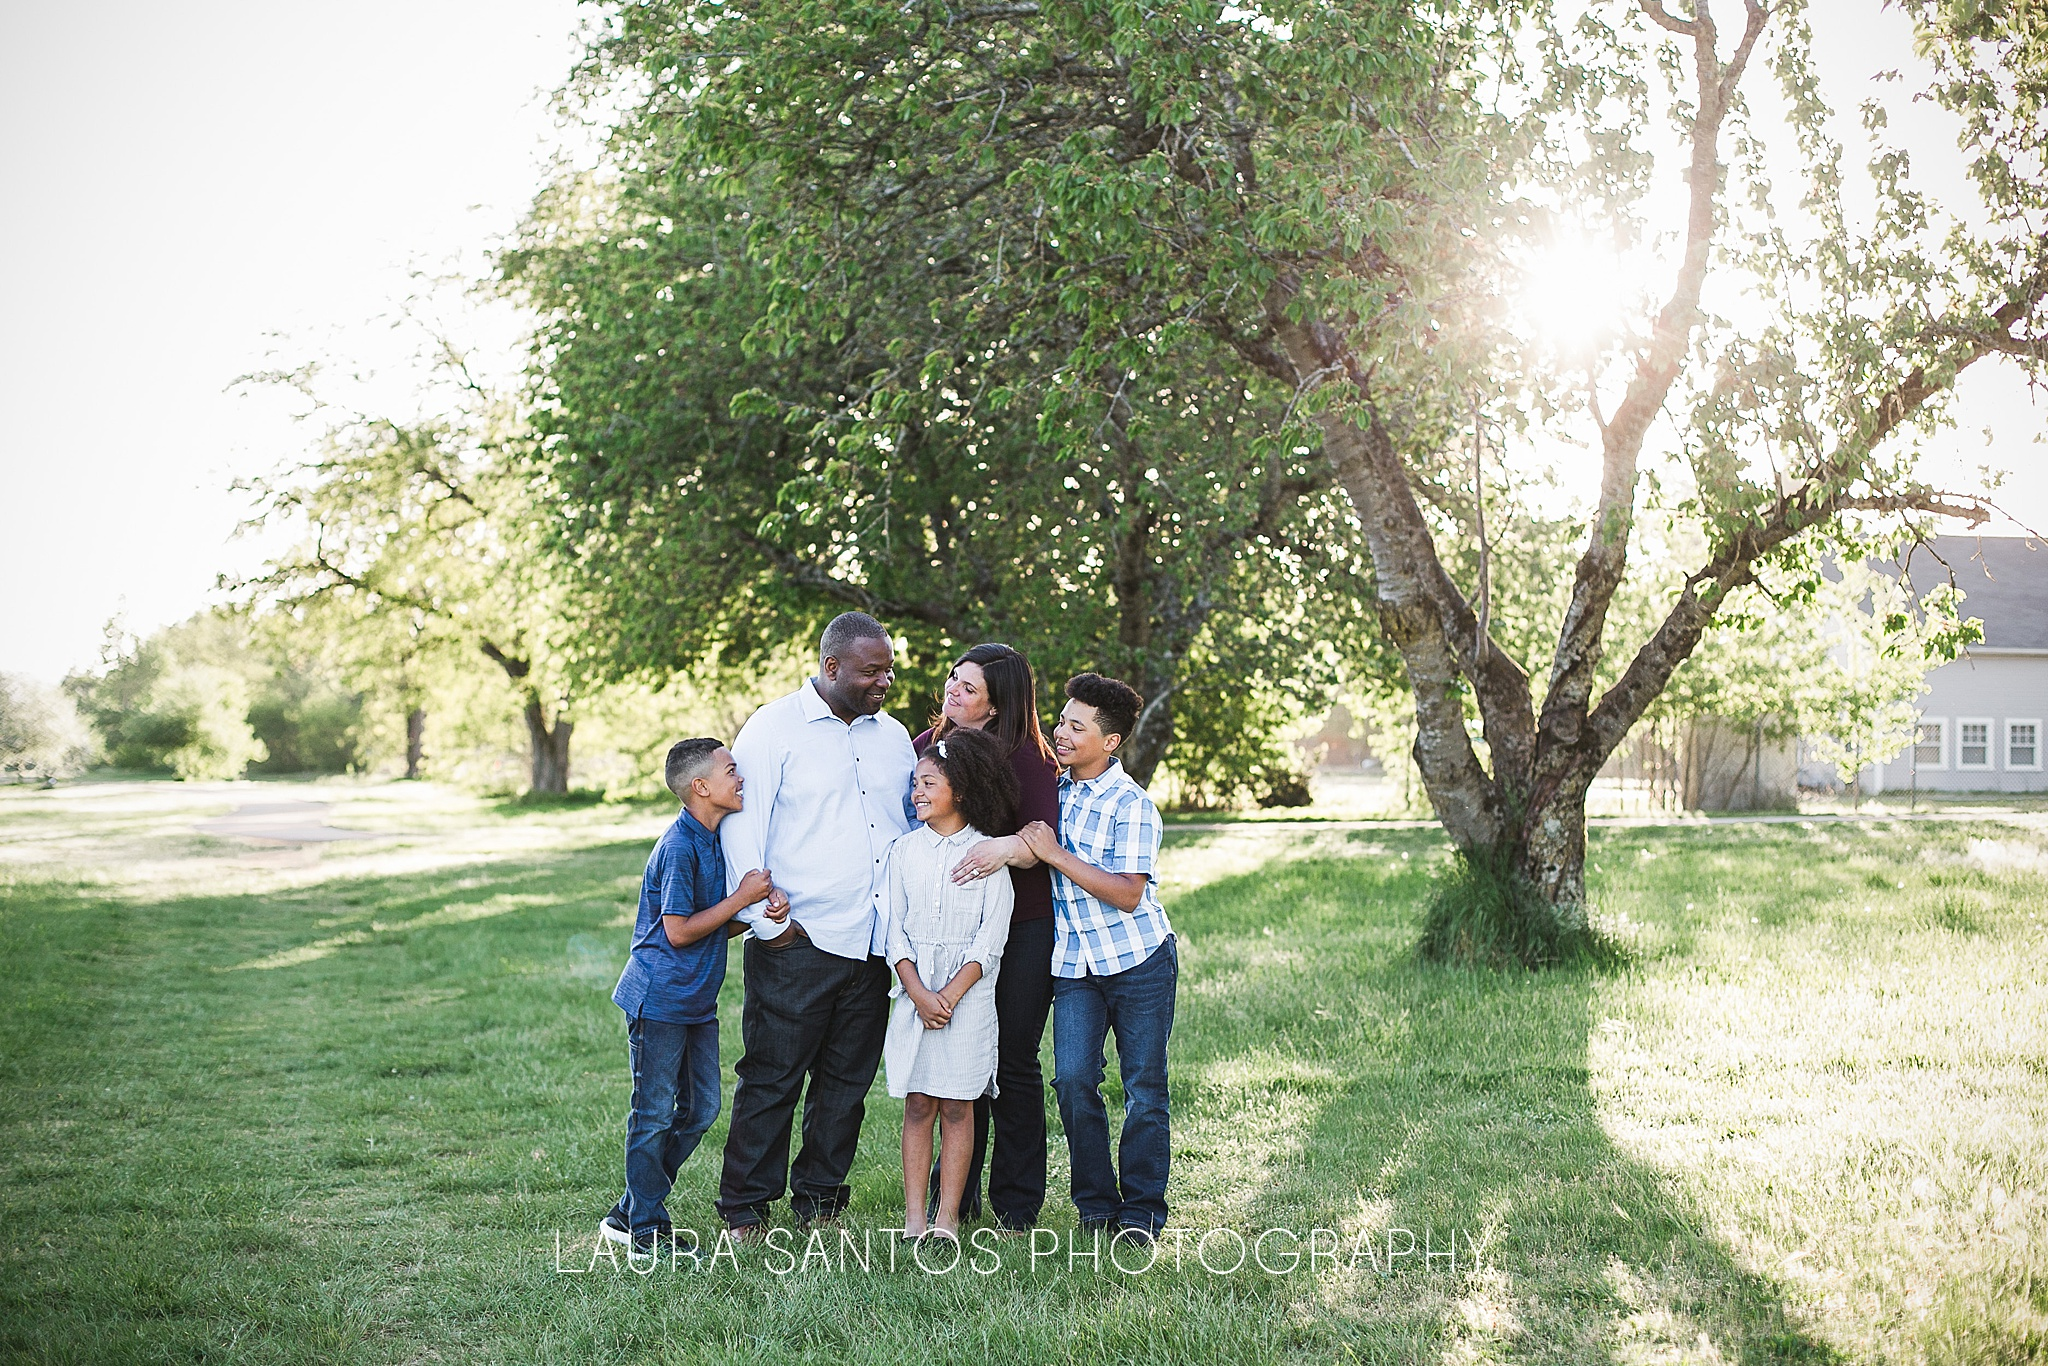 Laura Santos Photography Portland Oregon Family Photographer_0951.jpg